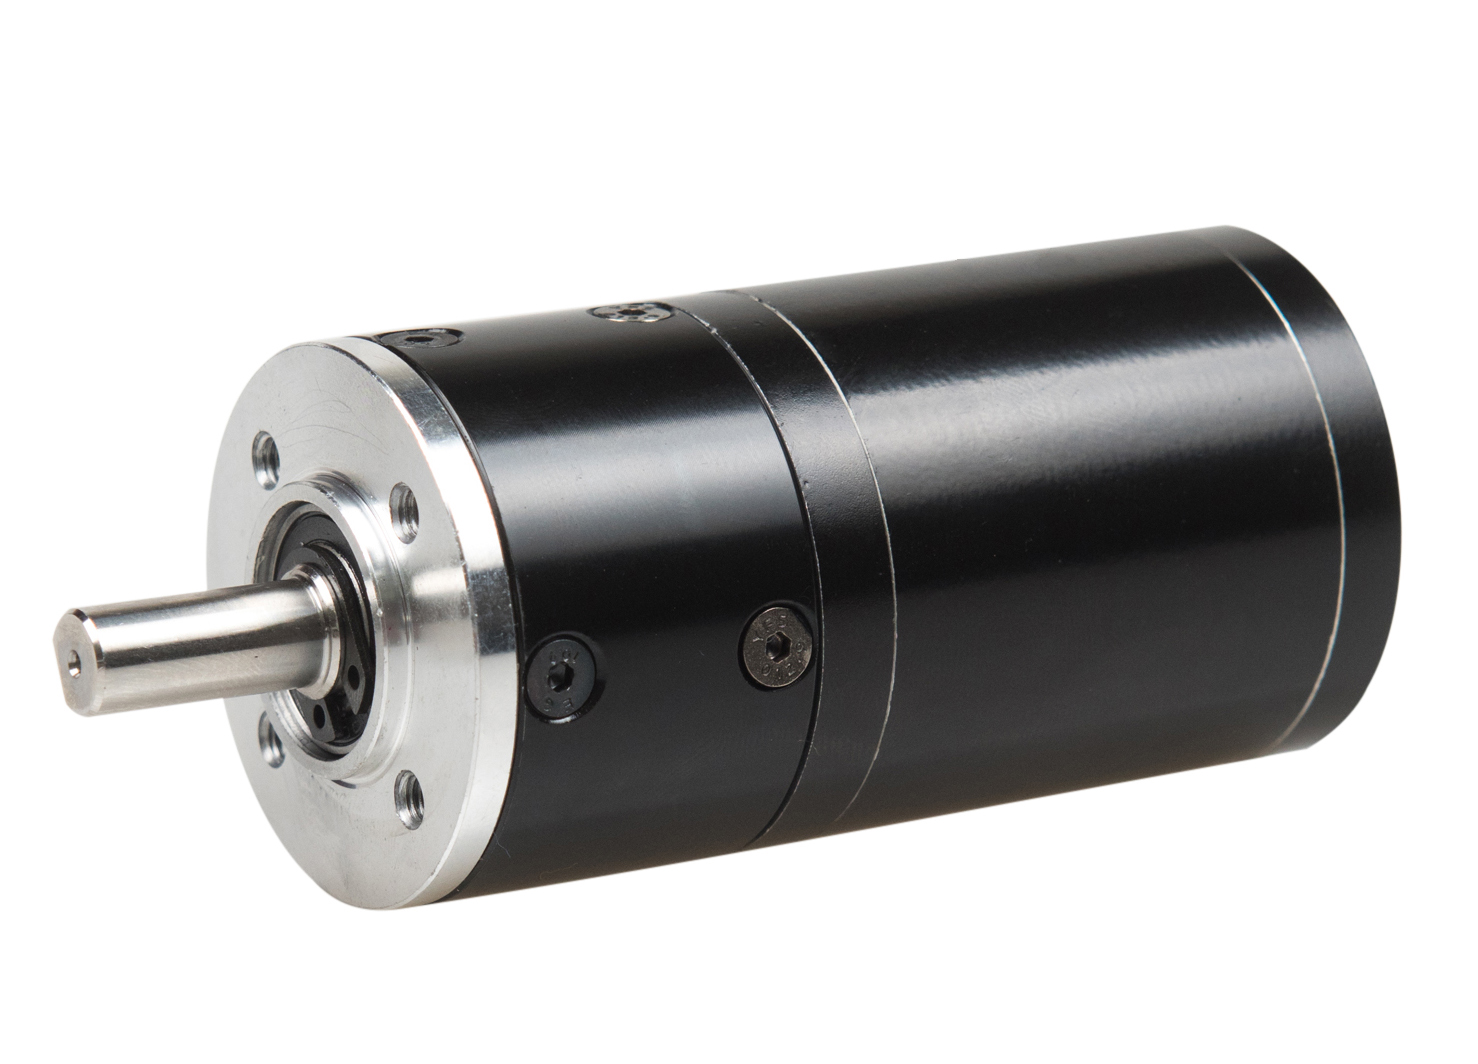 42mm Round Brushless DC Gear Motor